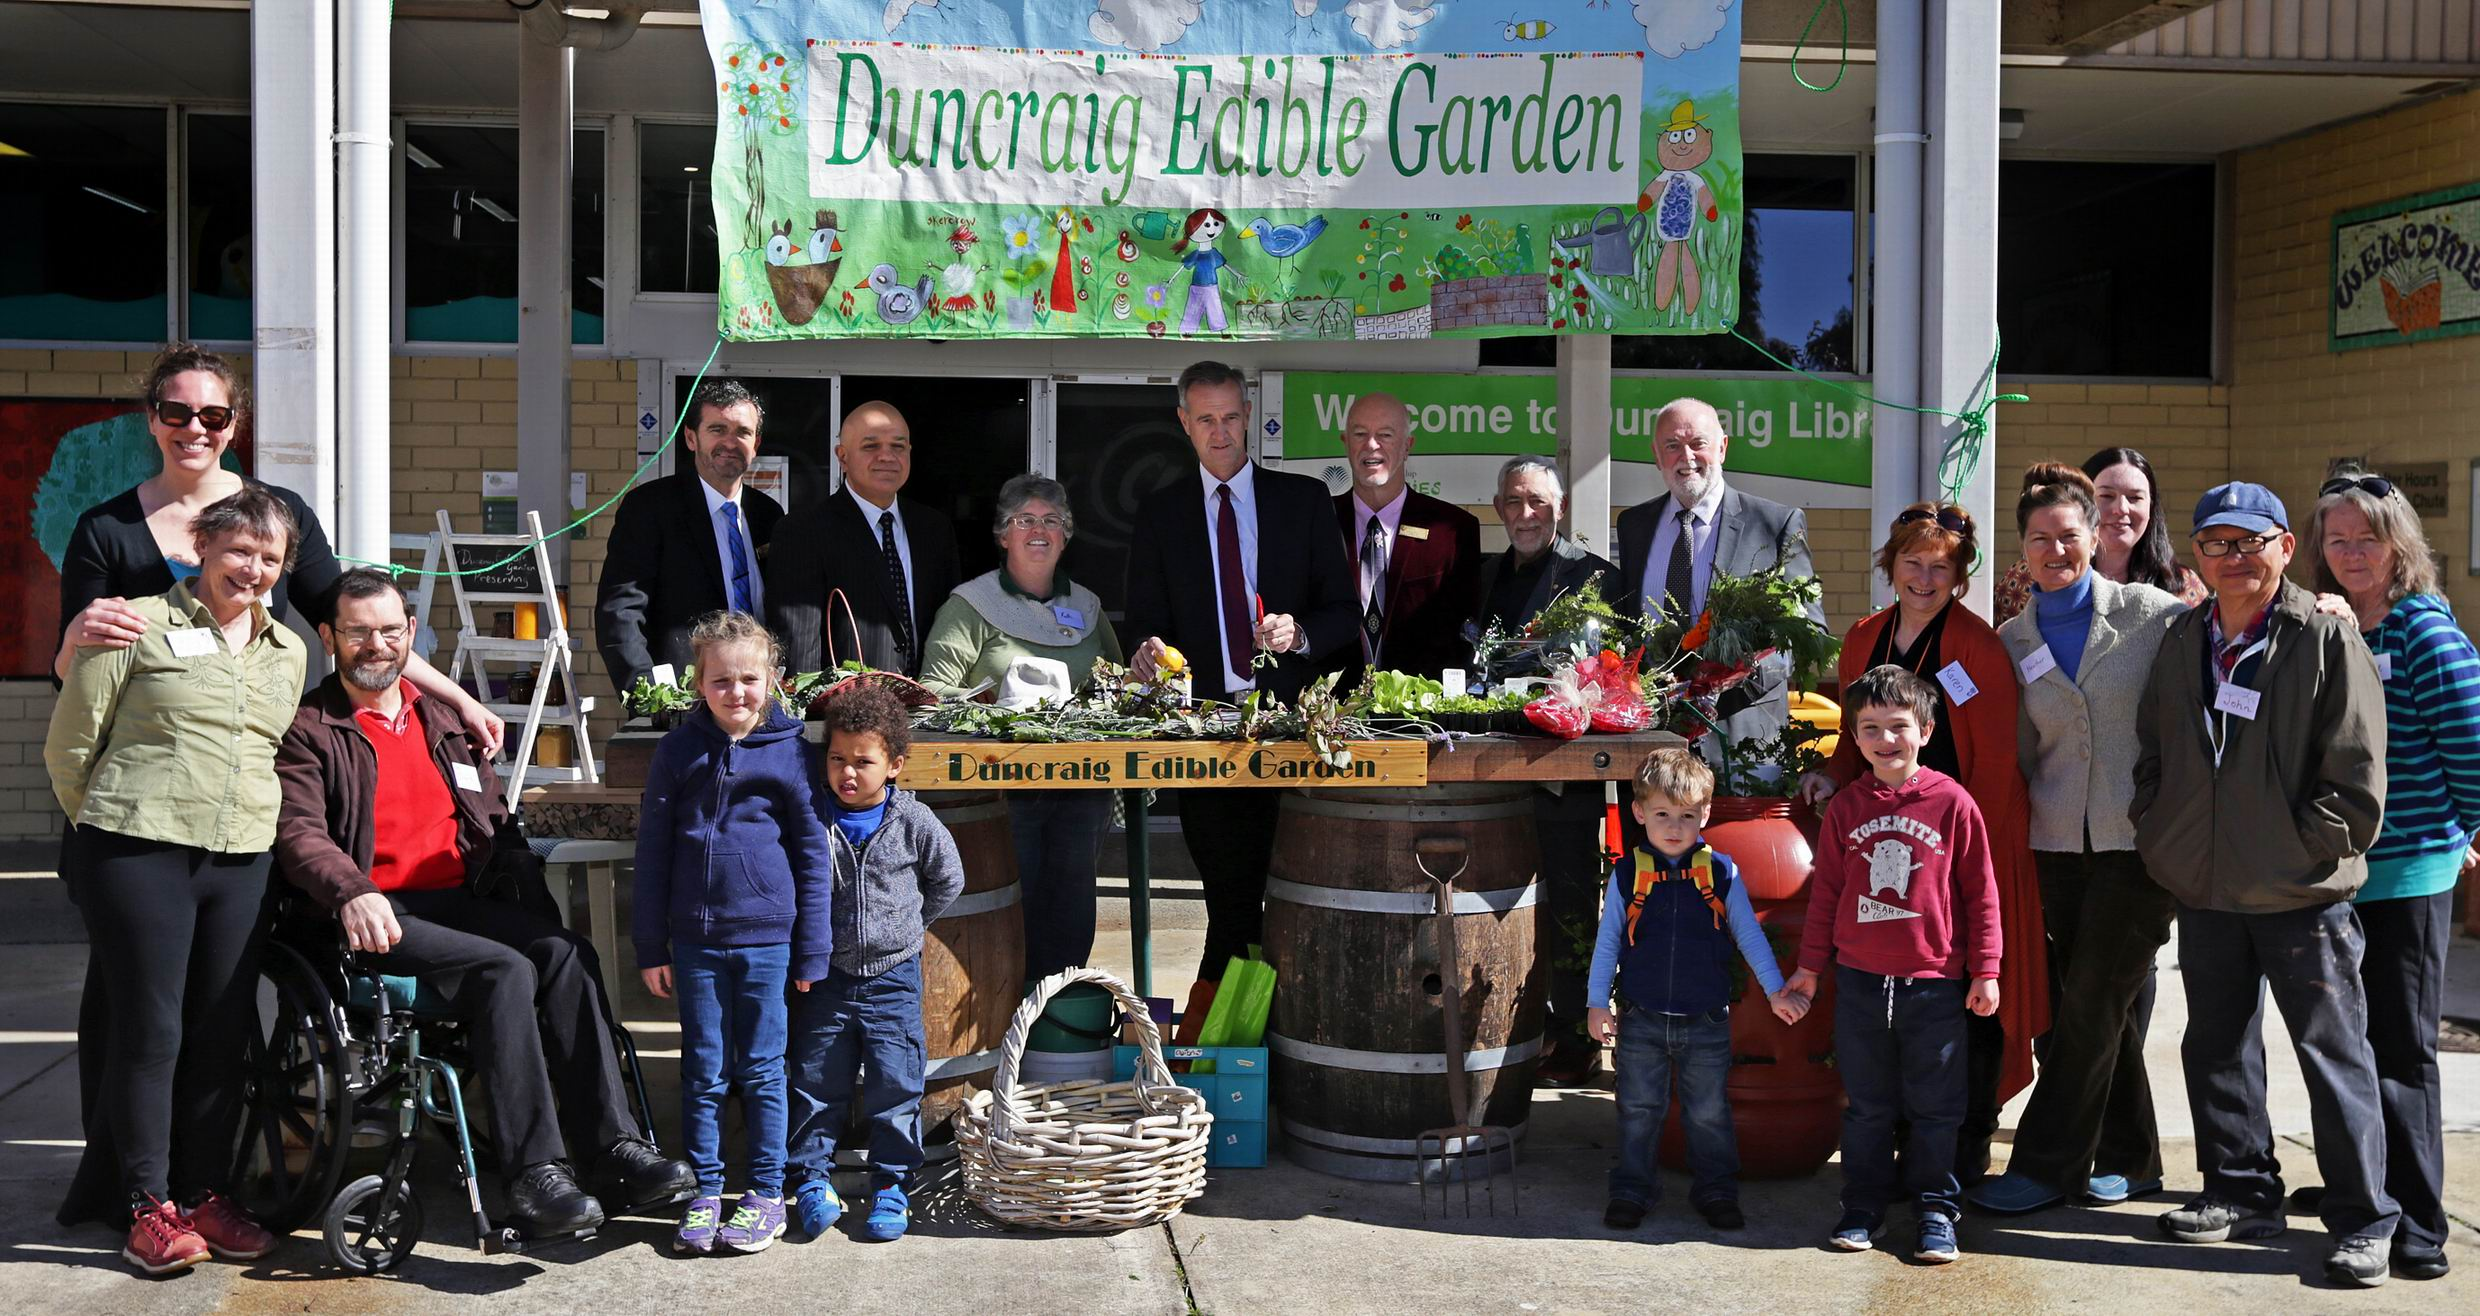 Community Services Minister Tony Simpson (centre) with Duncraig Edible Garden participants and supporters. Photo: Martin Kennealey